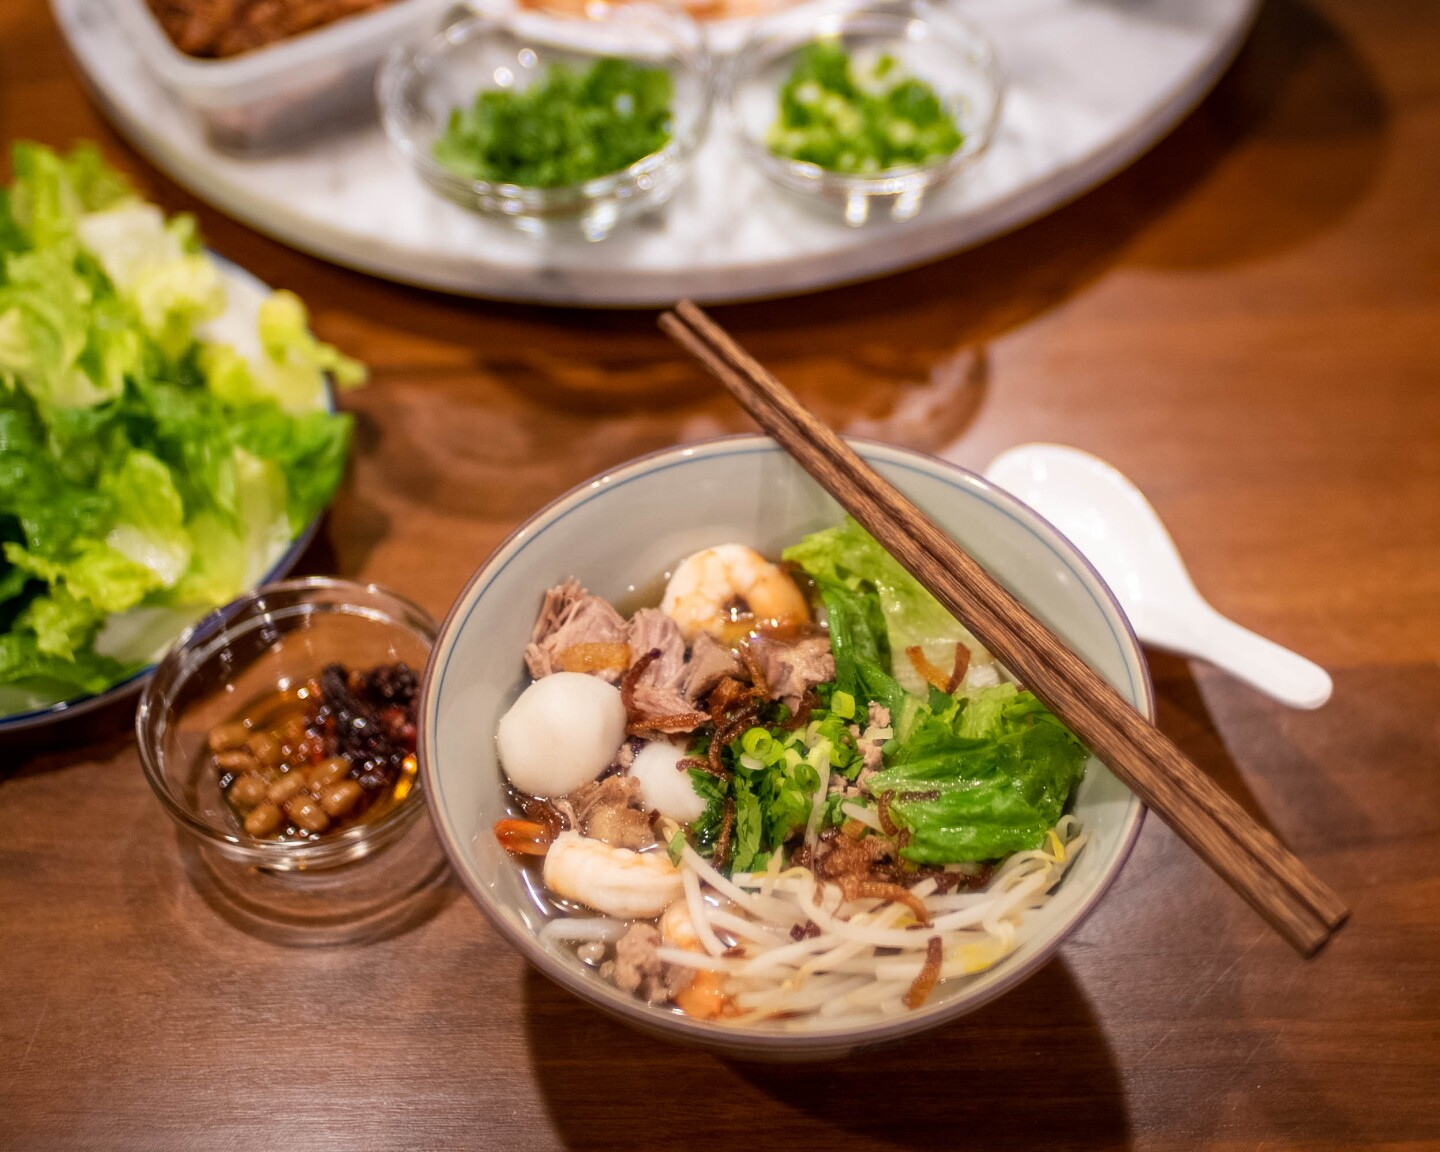 A bowl of Teochew noodles served with pork and seafood in broth garnished with fresh vegetables.